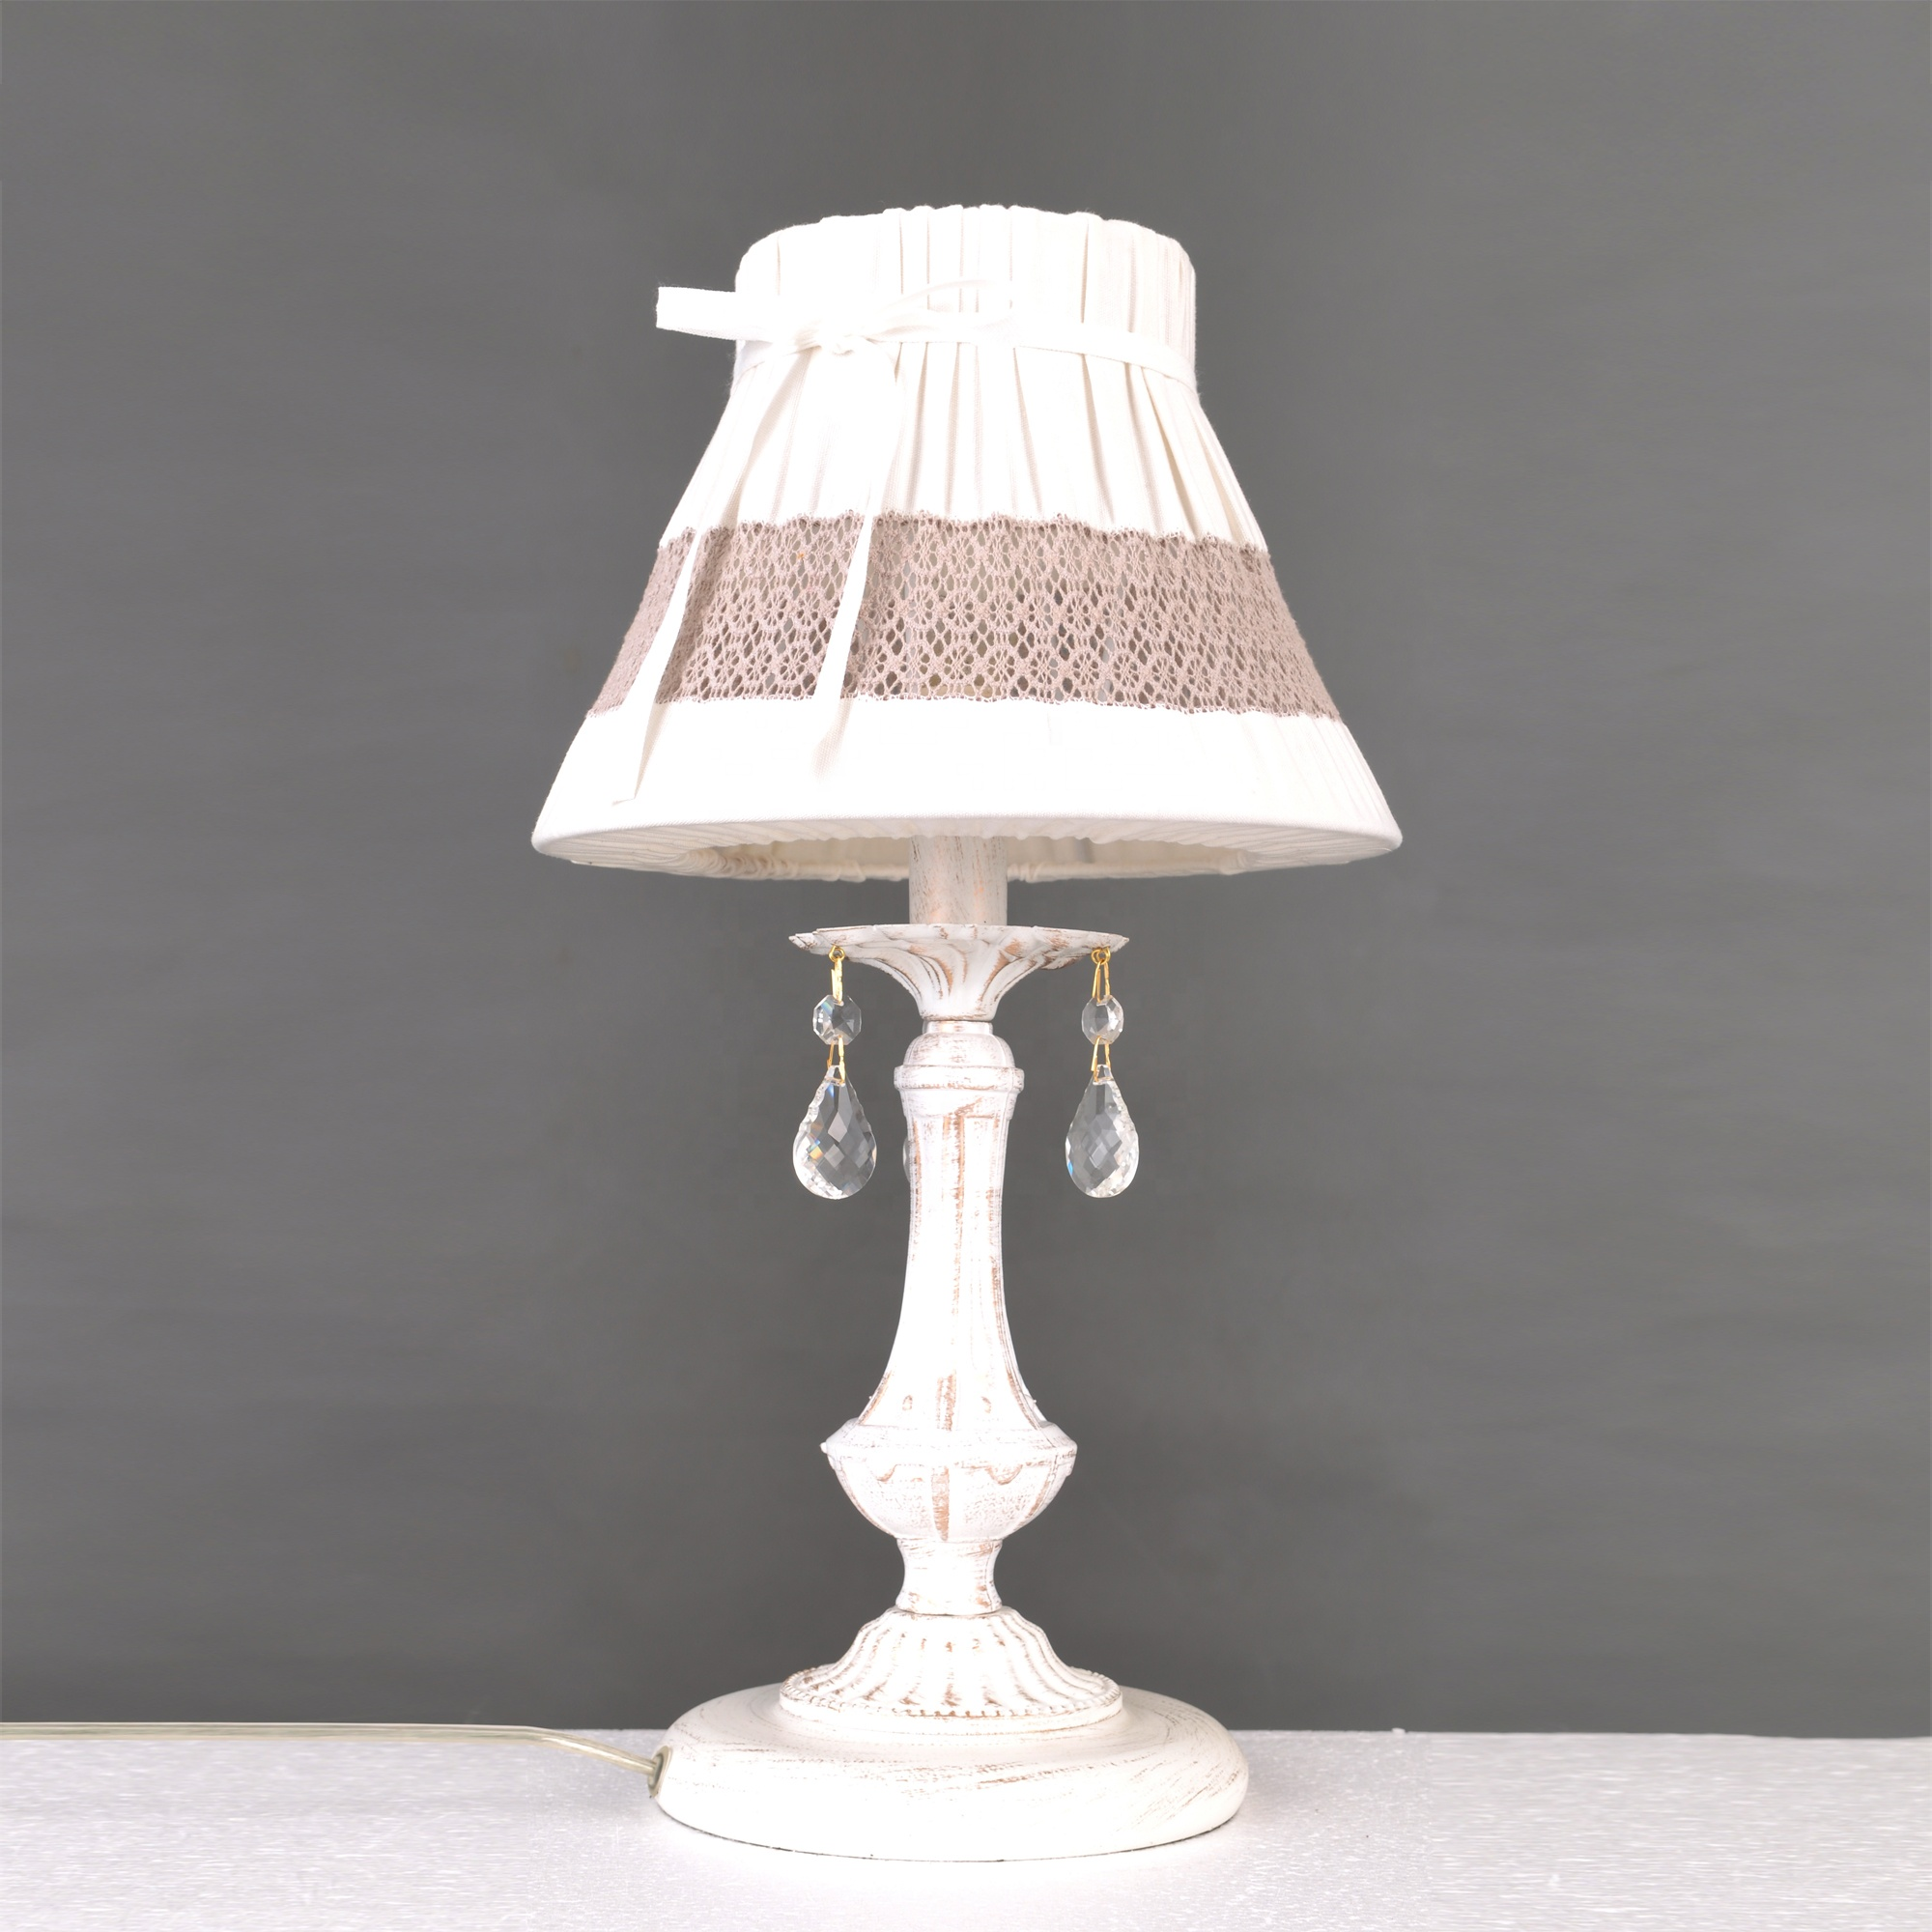 Vintage Rustic White Lace Shade Table Lamp For Child's Room Bedroom Beside Lamp Desk Light Decor